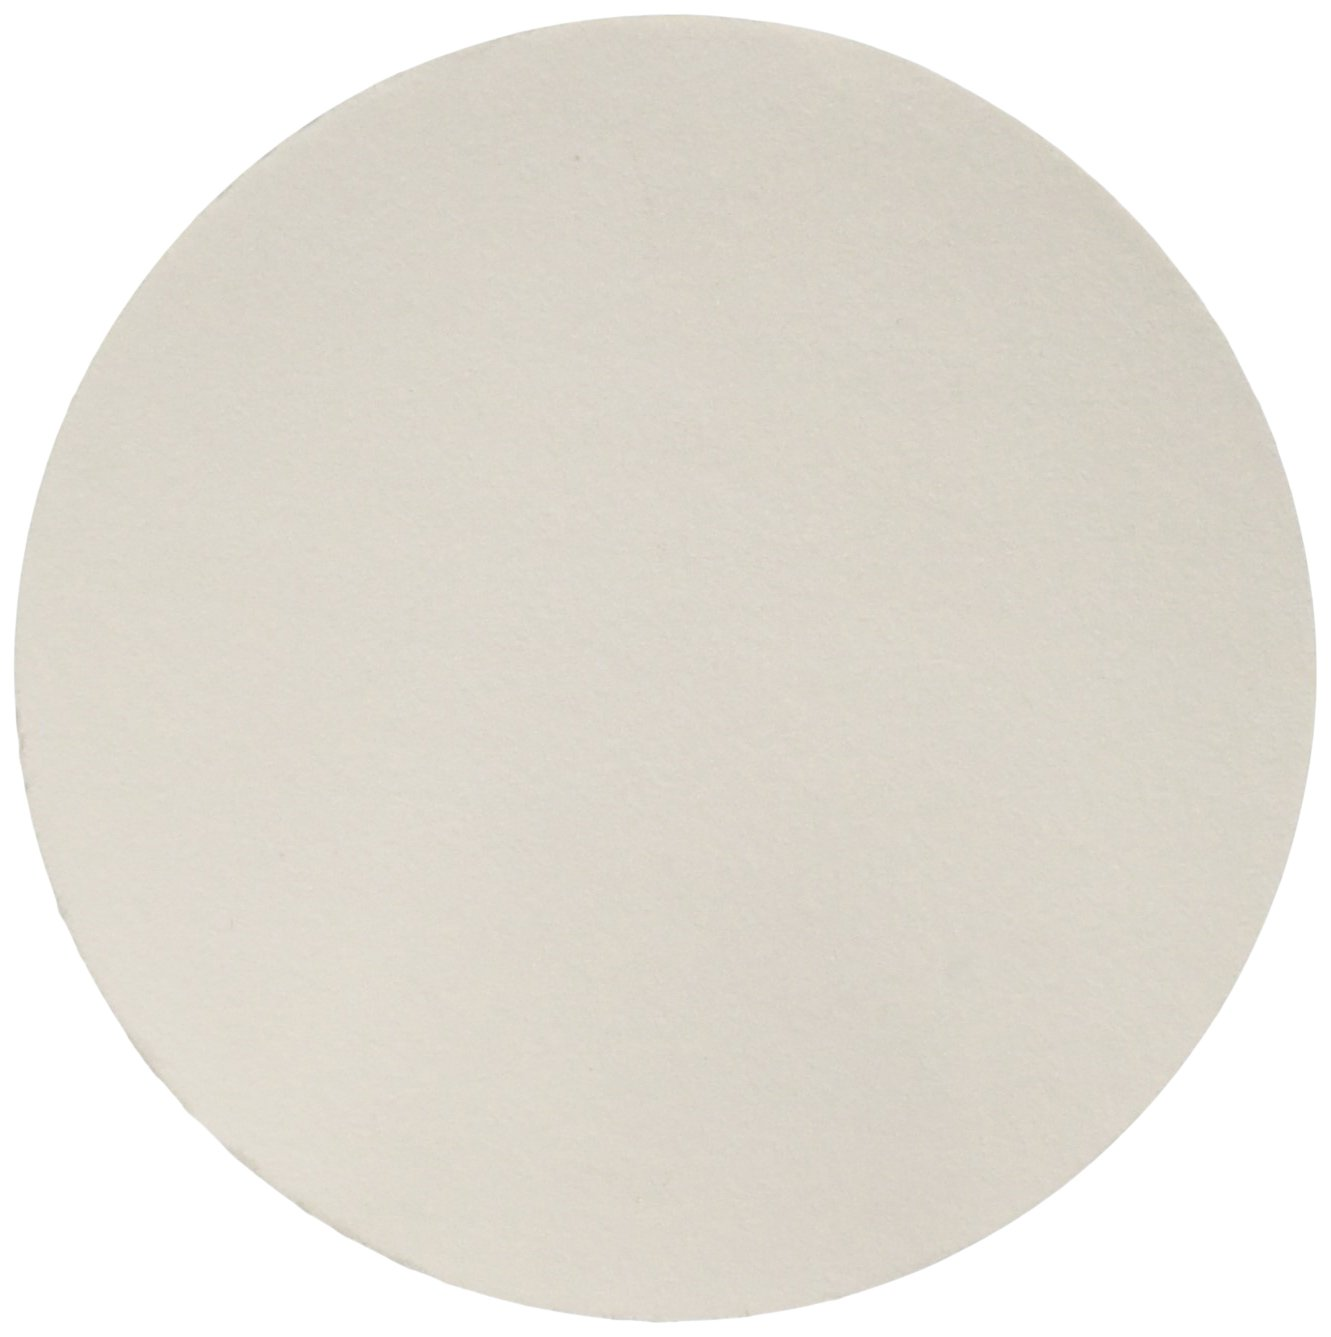 Whatman 4712N20PK 1004090 Grade 4 Qualitative Filter Paper, 90 mm Thick and Max Volume 1621 ml/m (Pack of 100)